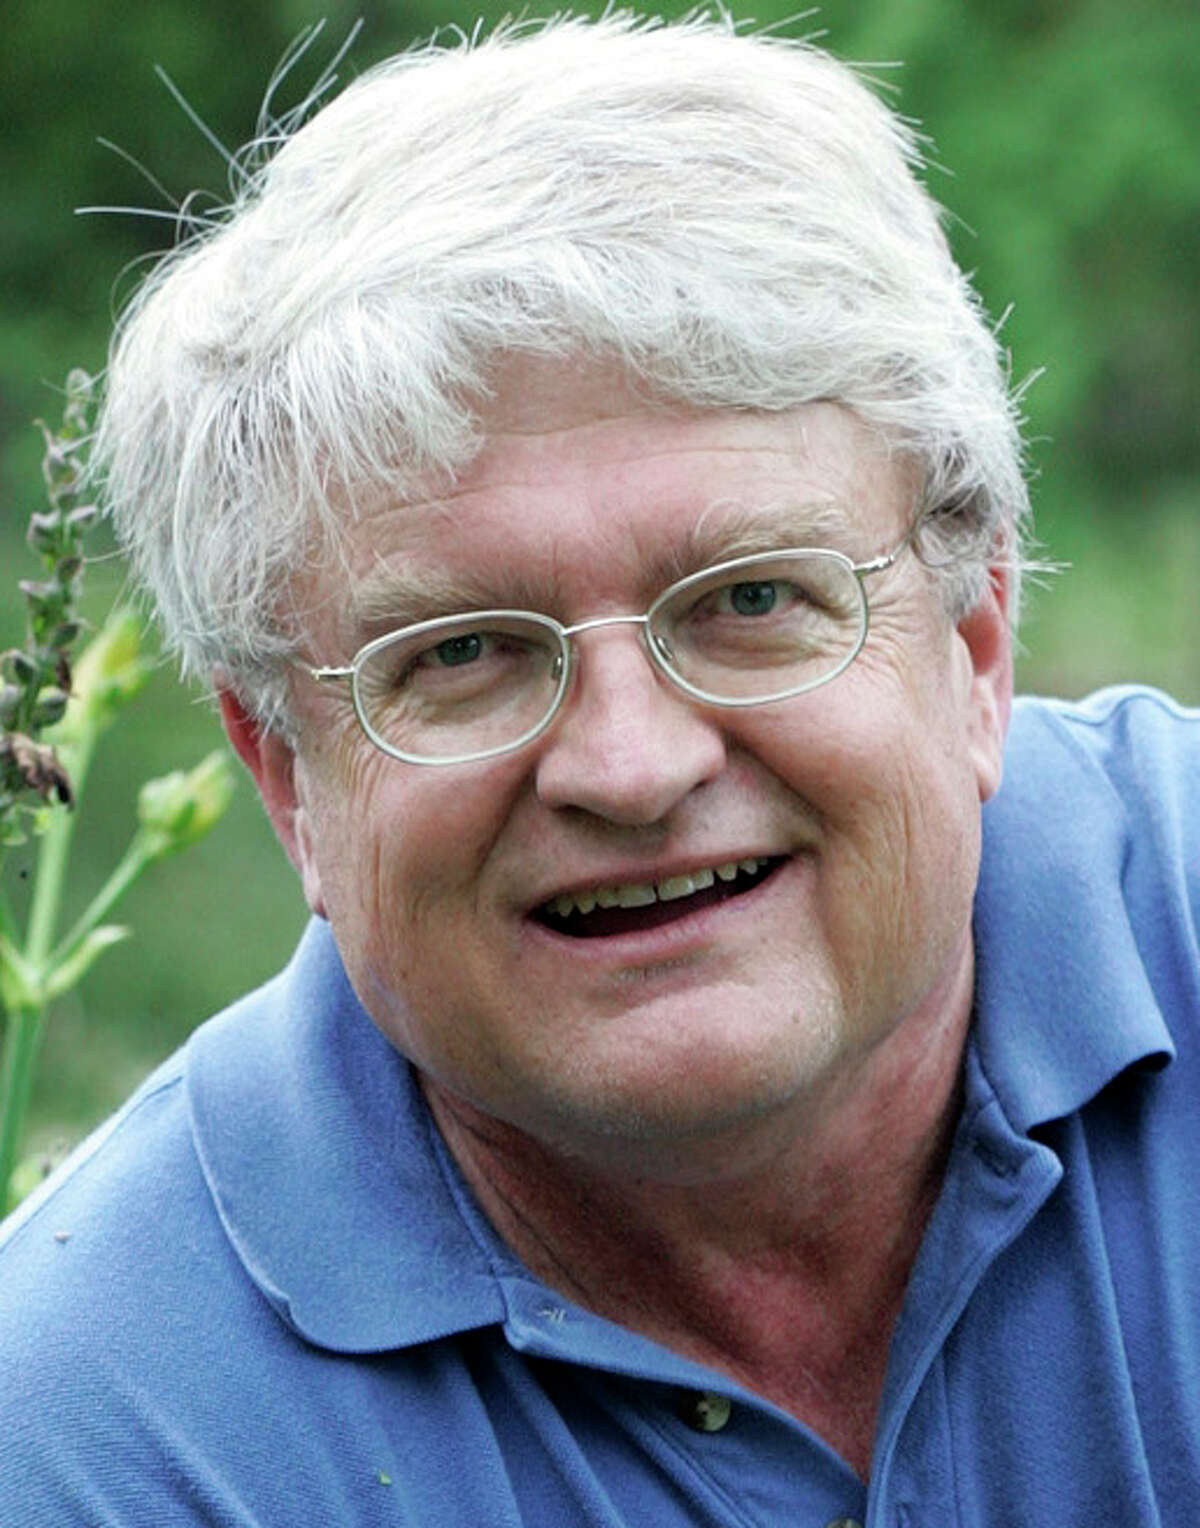 Calvin Finch, horticulturist and Urban Water Program director for the San Antonio-based Texas A&M Institute of Renewable Natural Resources